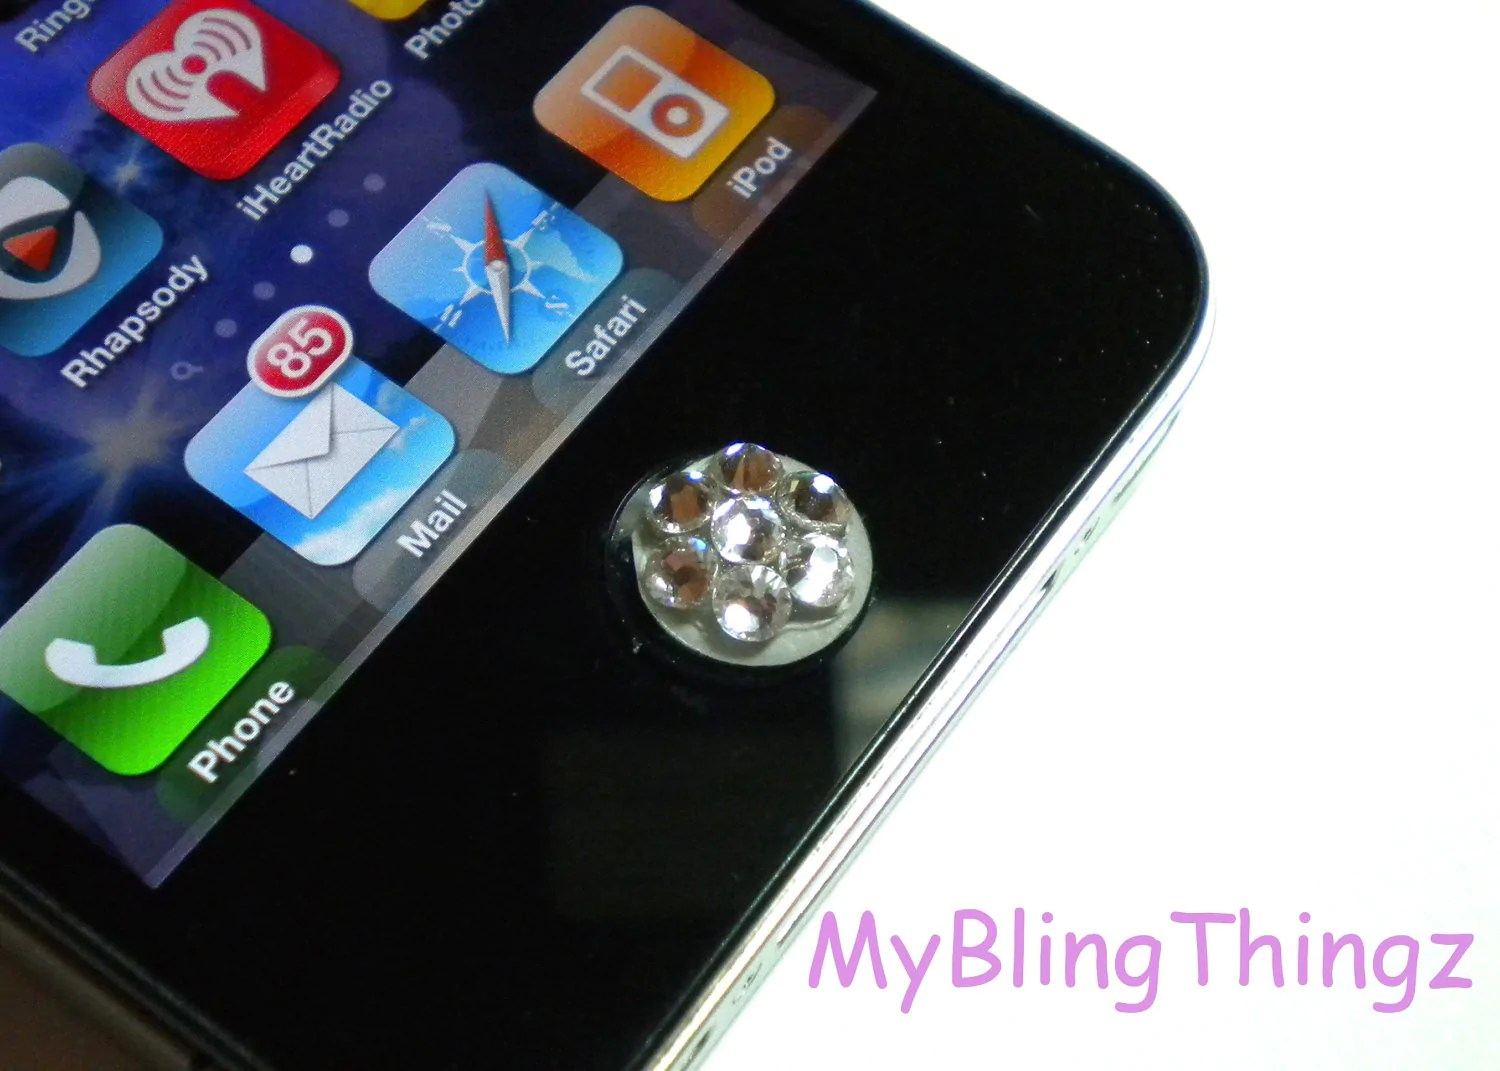 Iphone 3gs Crystal Bling Home Button Sticker For Apple Iphone 3gs 4 4s 5 Ipad 2 3 4 Mini Ipod Touch All Handmade W Swarovski Elements Aquamarine